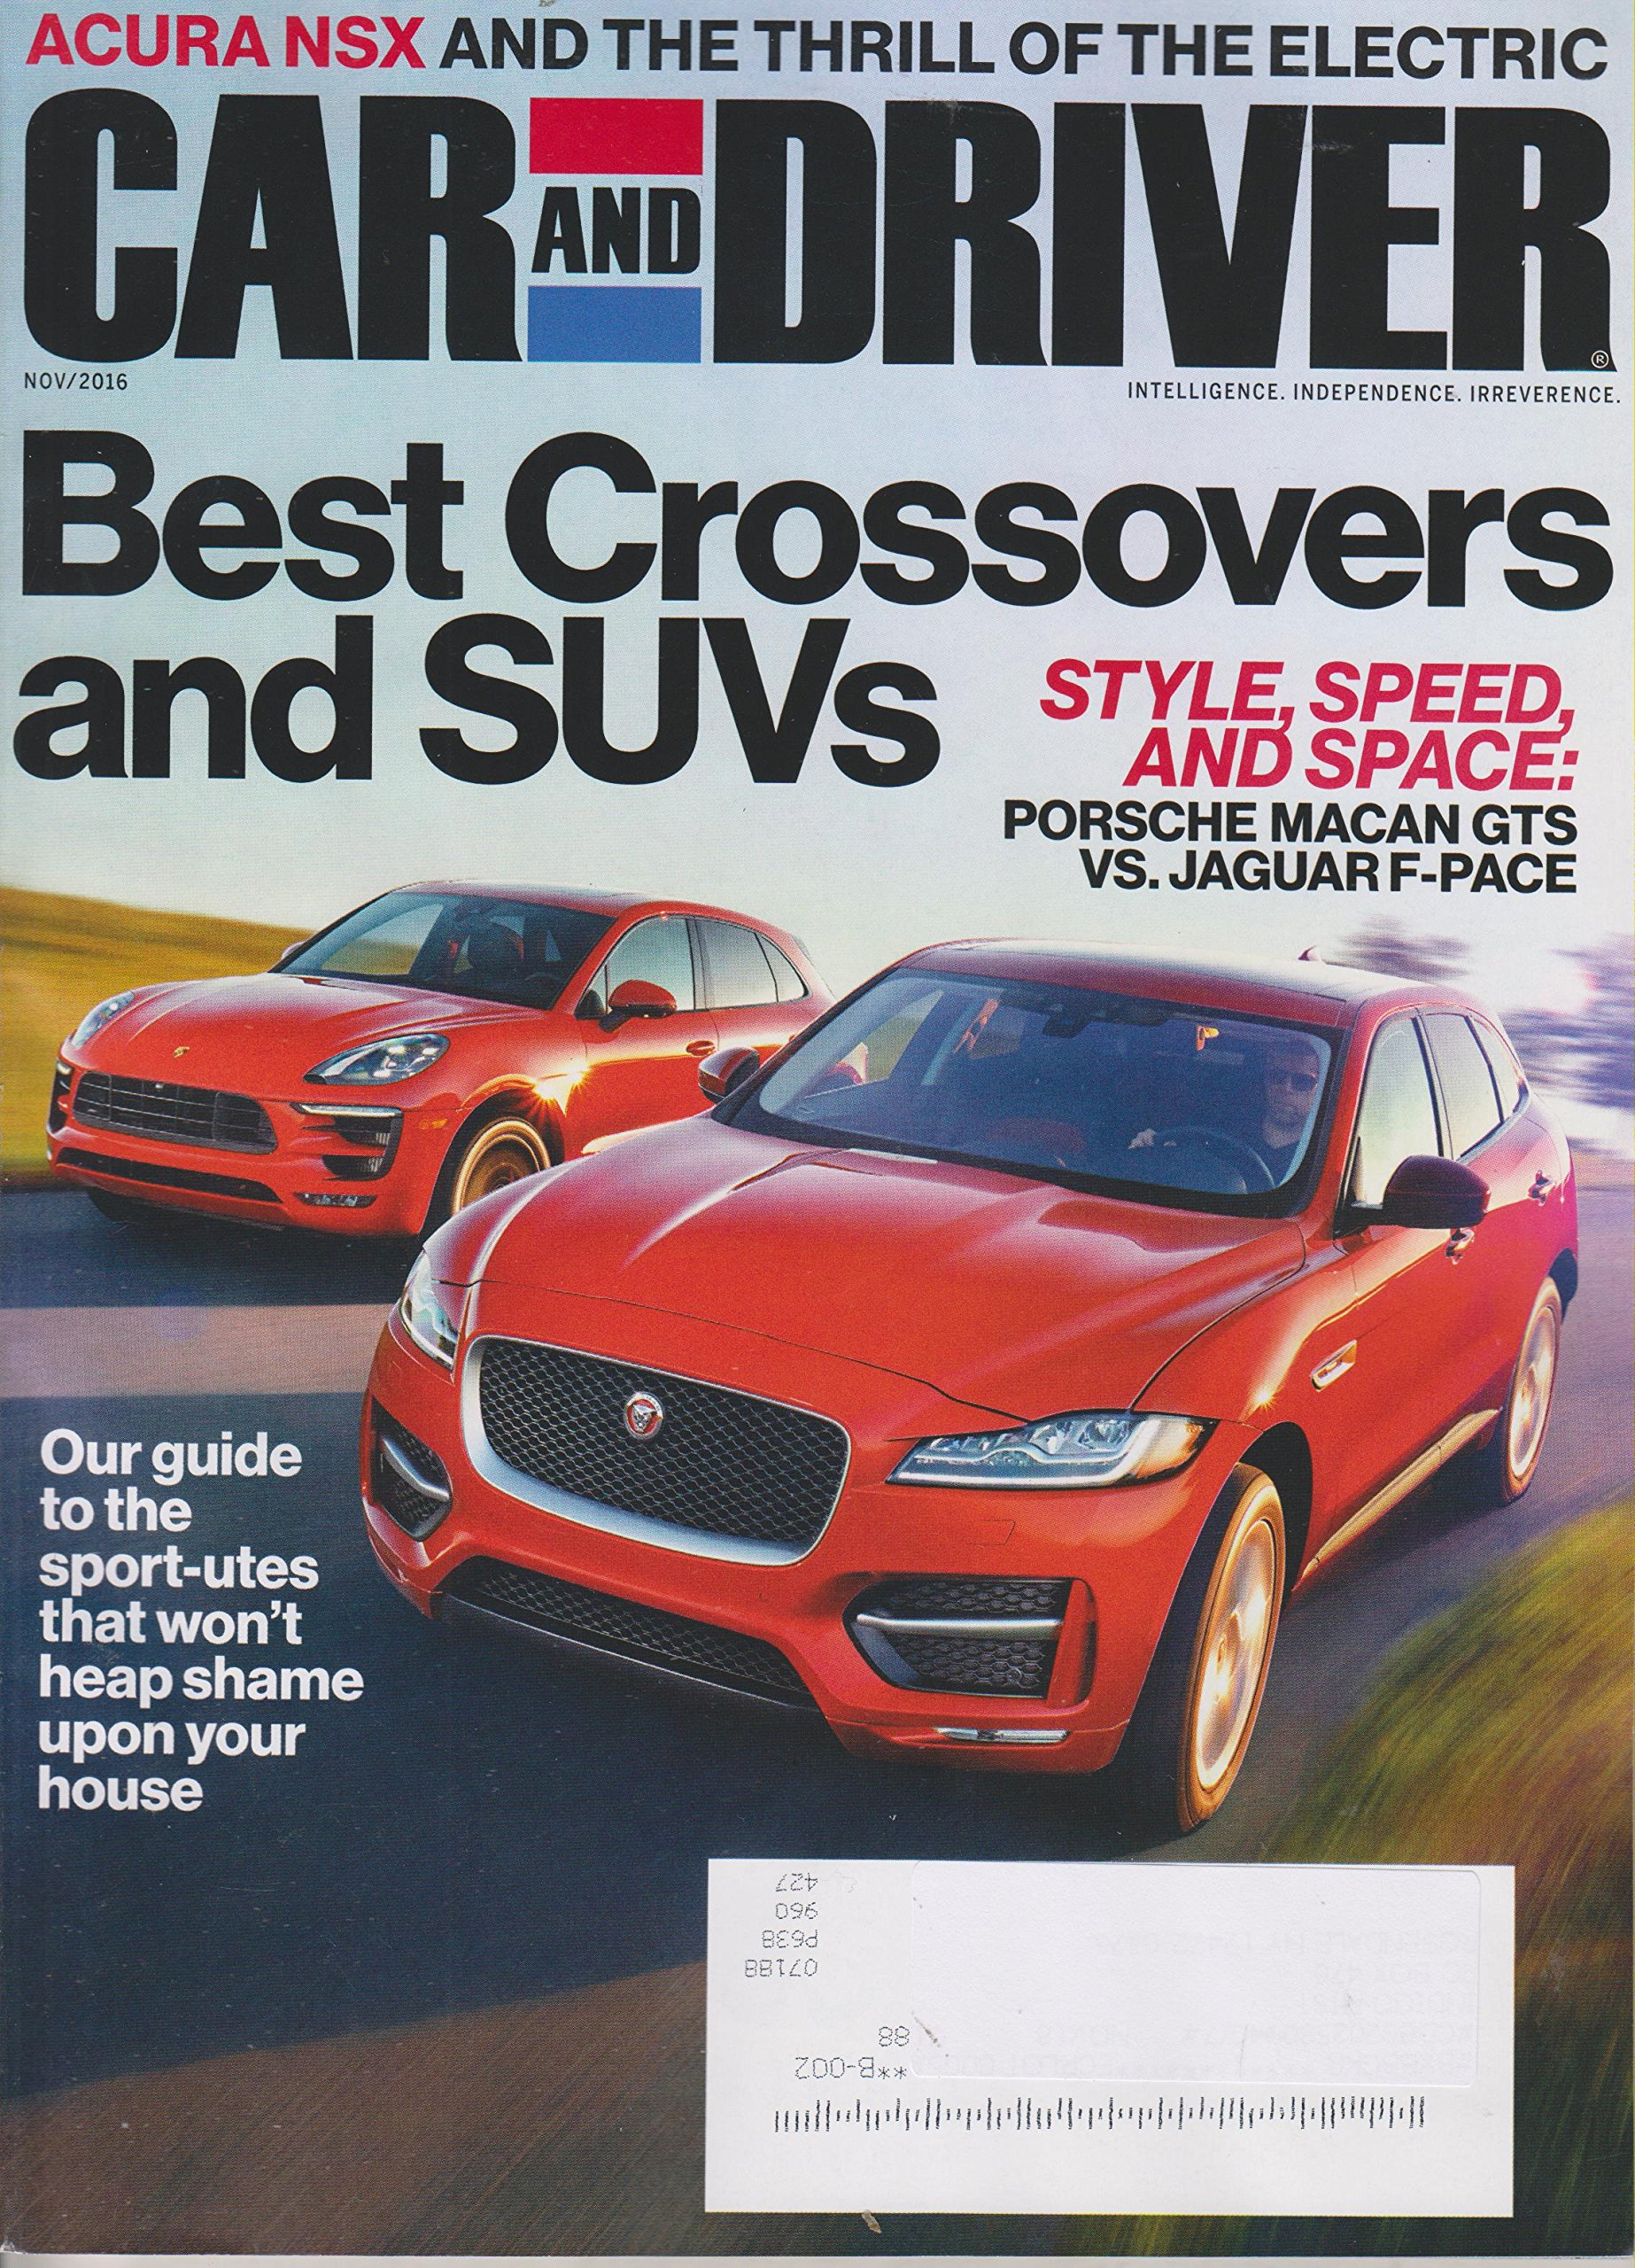 Read Online Car and Driver November 2016 Best Crossovers and SUVs Style, Speed, and Space: Porsche Macan GTS vs. Jaguar F-Pace PDF